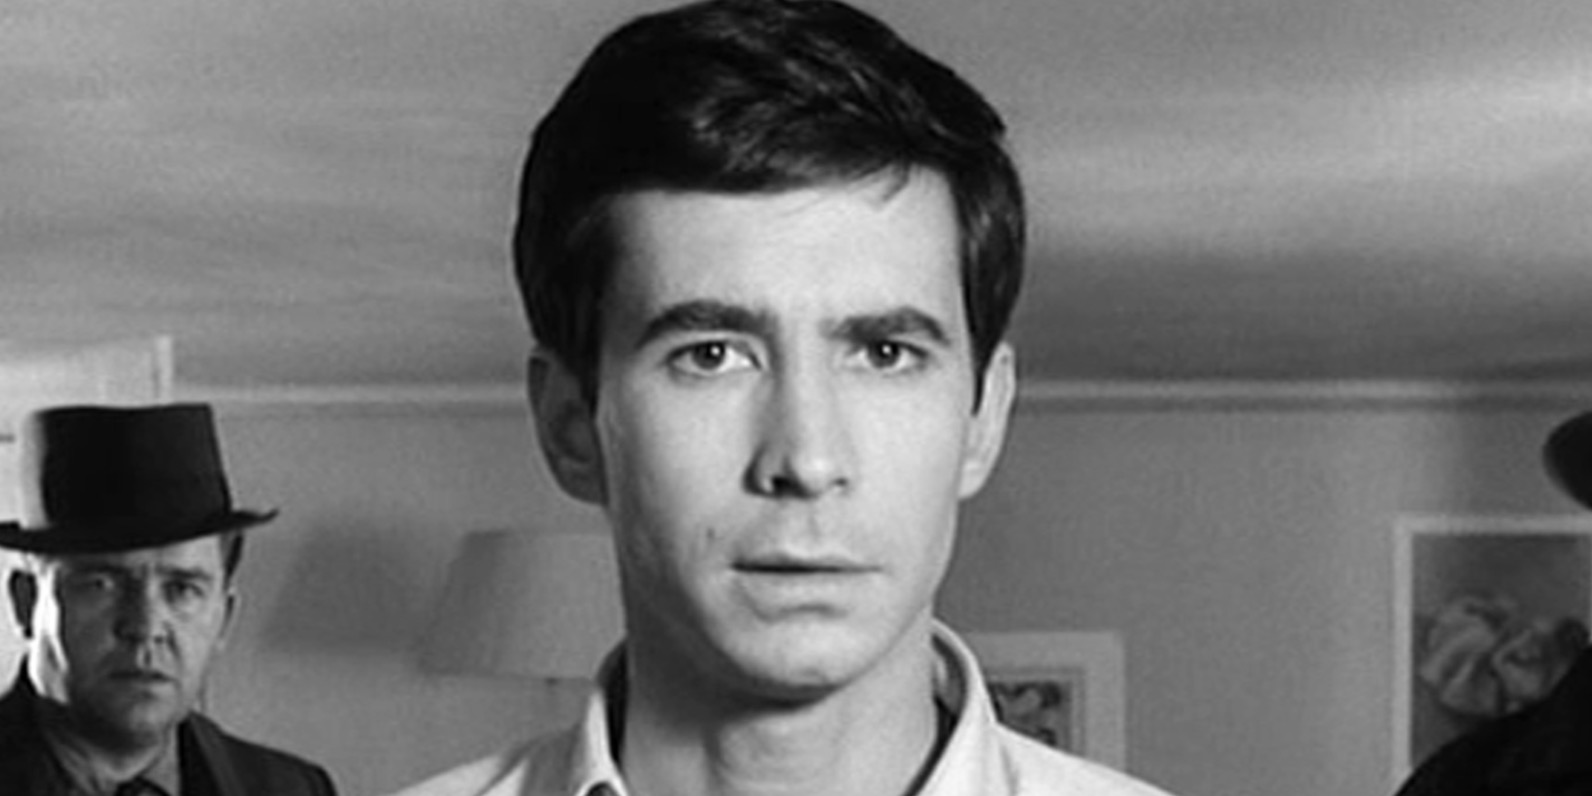 60s male icon, movies, Anthony Perkins, The trial